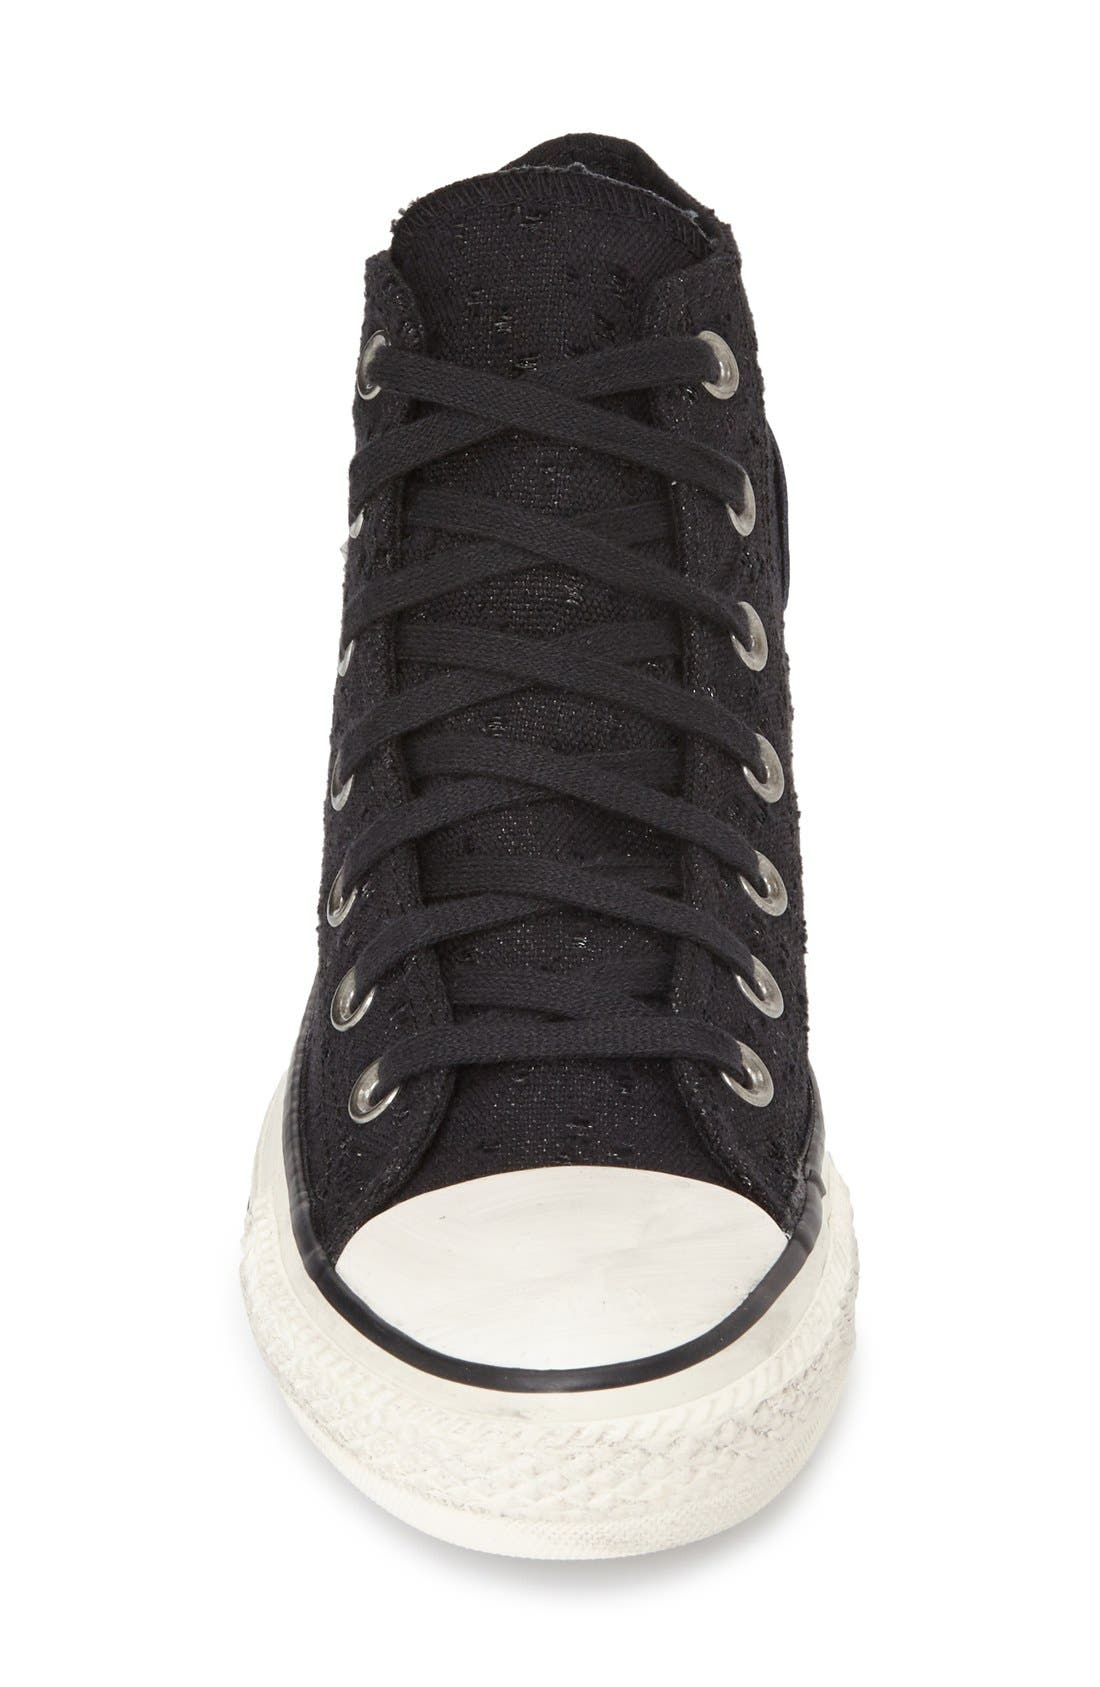 Alternate Image 3  - Converse Chuck Taylor® All Star® 'Star Hardware' High Top Sneaker (Women)